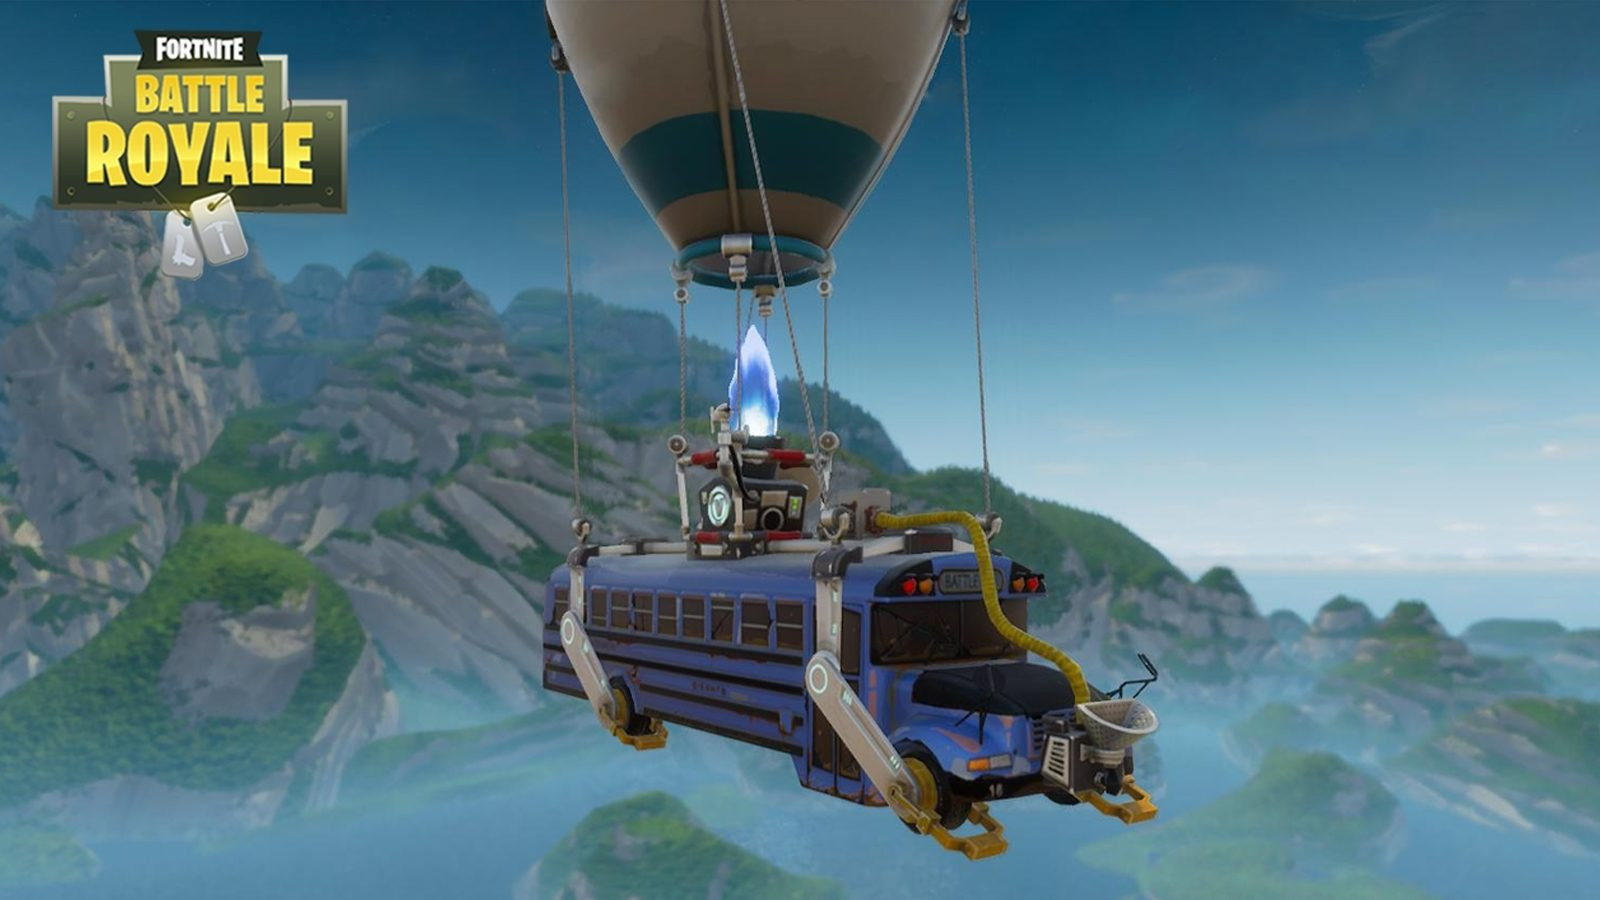 Battle Bus | Fortnite - zilliongamer your game guide